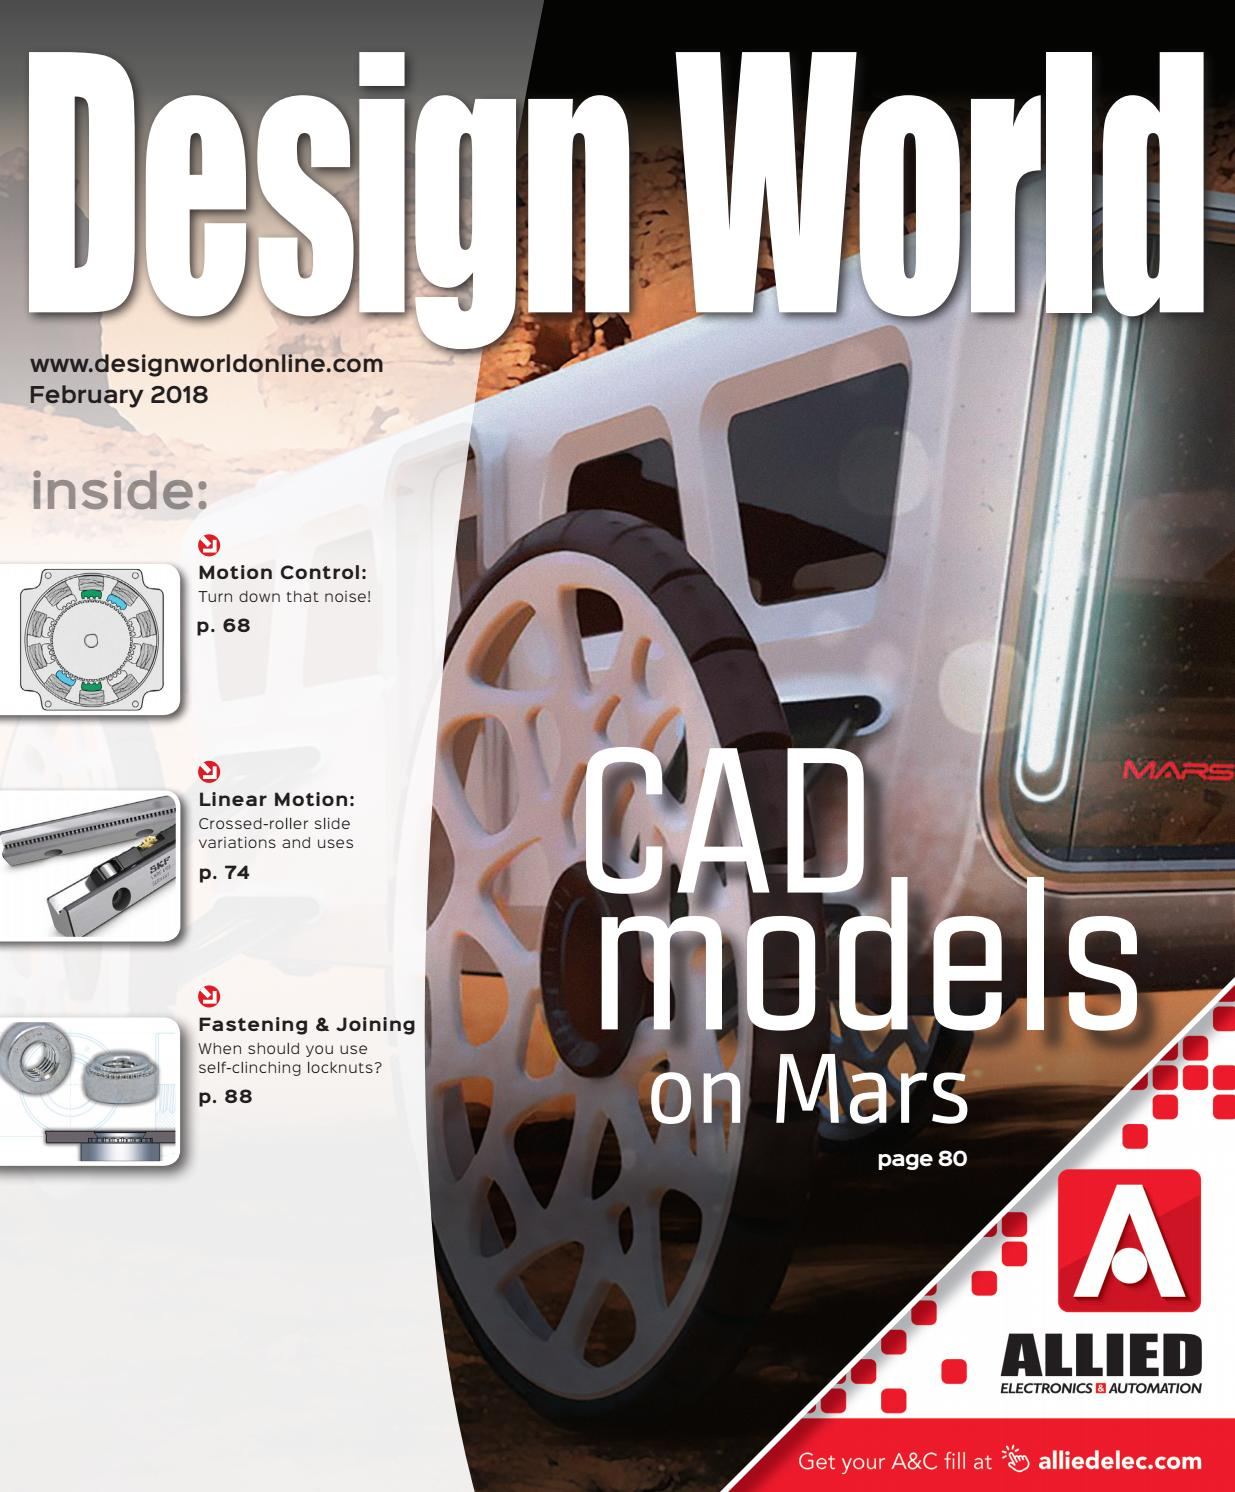 Design World February 2018 By Wtwh Media Llc Issuu Linearizing Circuit For Thermocouples B2b Electronic Components